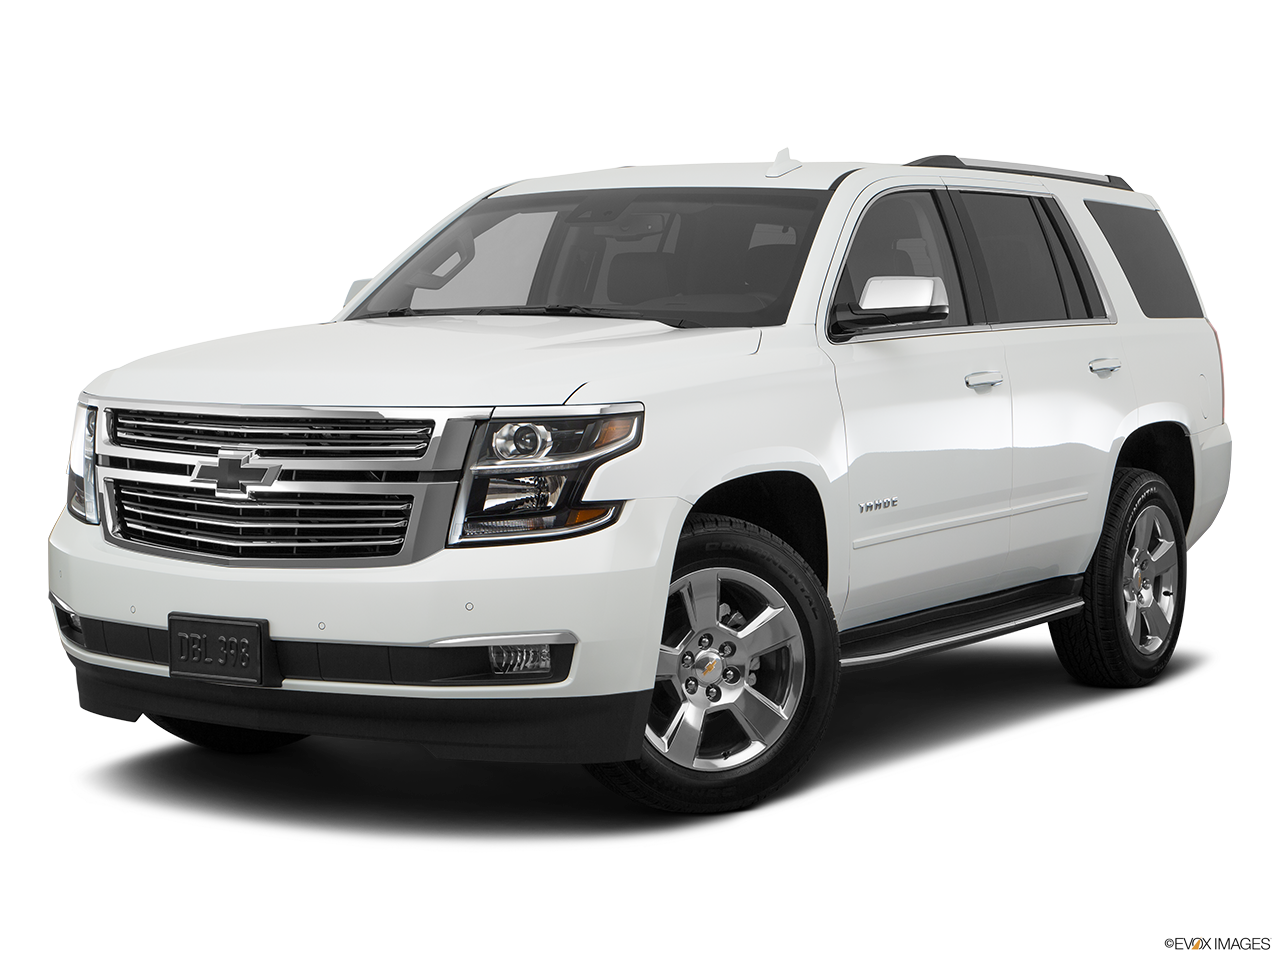 test drive a 2017 chevrolet tahoe at champion chevrolet in reno. Cars Review. Best American Auto & Cars Review